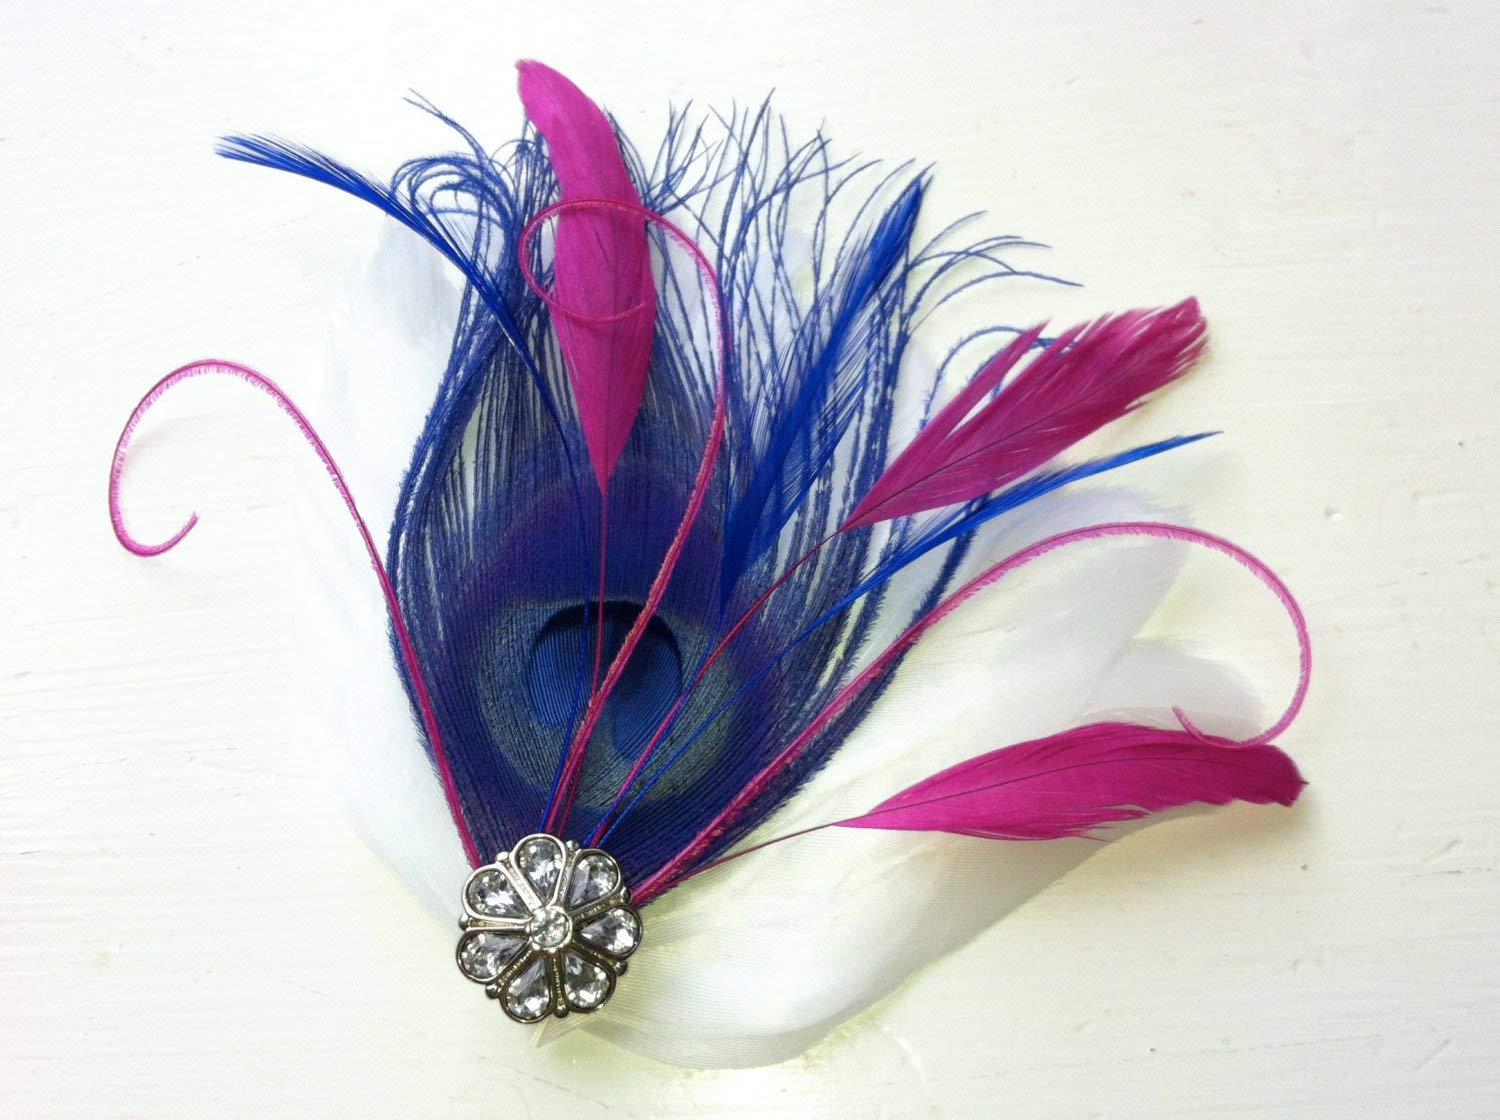 Oh Lucy Handmade MARISA Peacock Feather and Crystal Hair Clip, Feather Fascinator, Bridal Hair Piece in Royal Blue, Fuchsia, and White